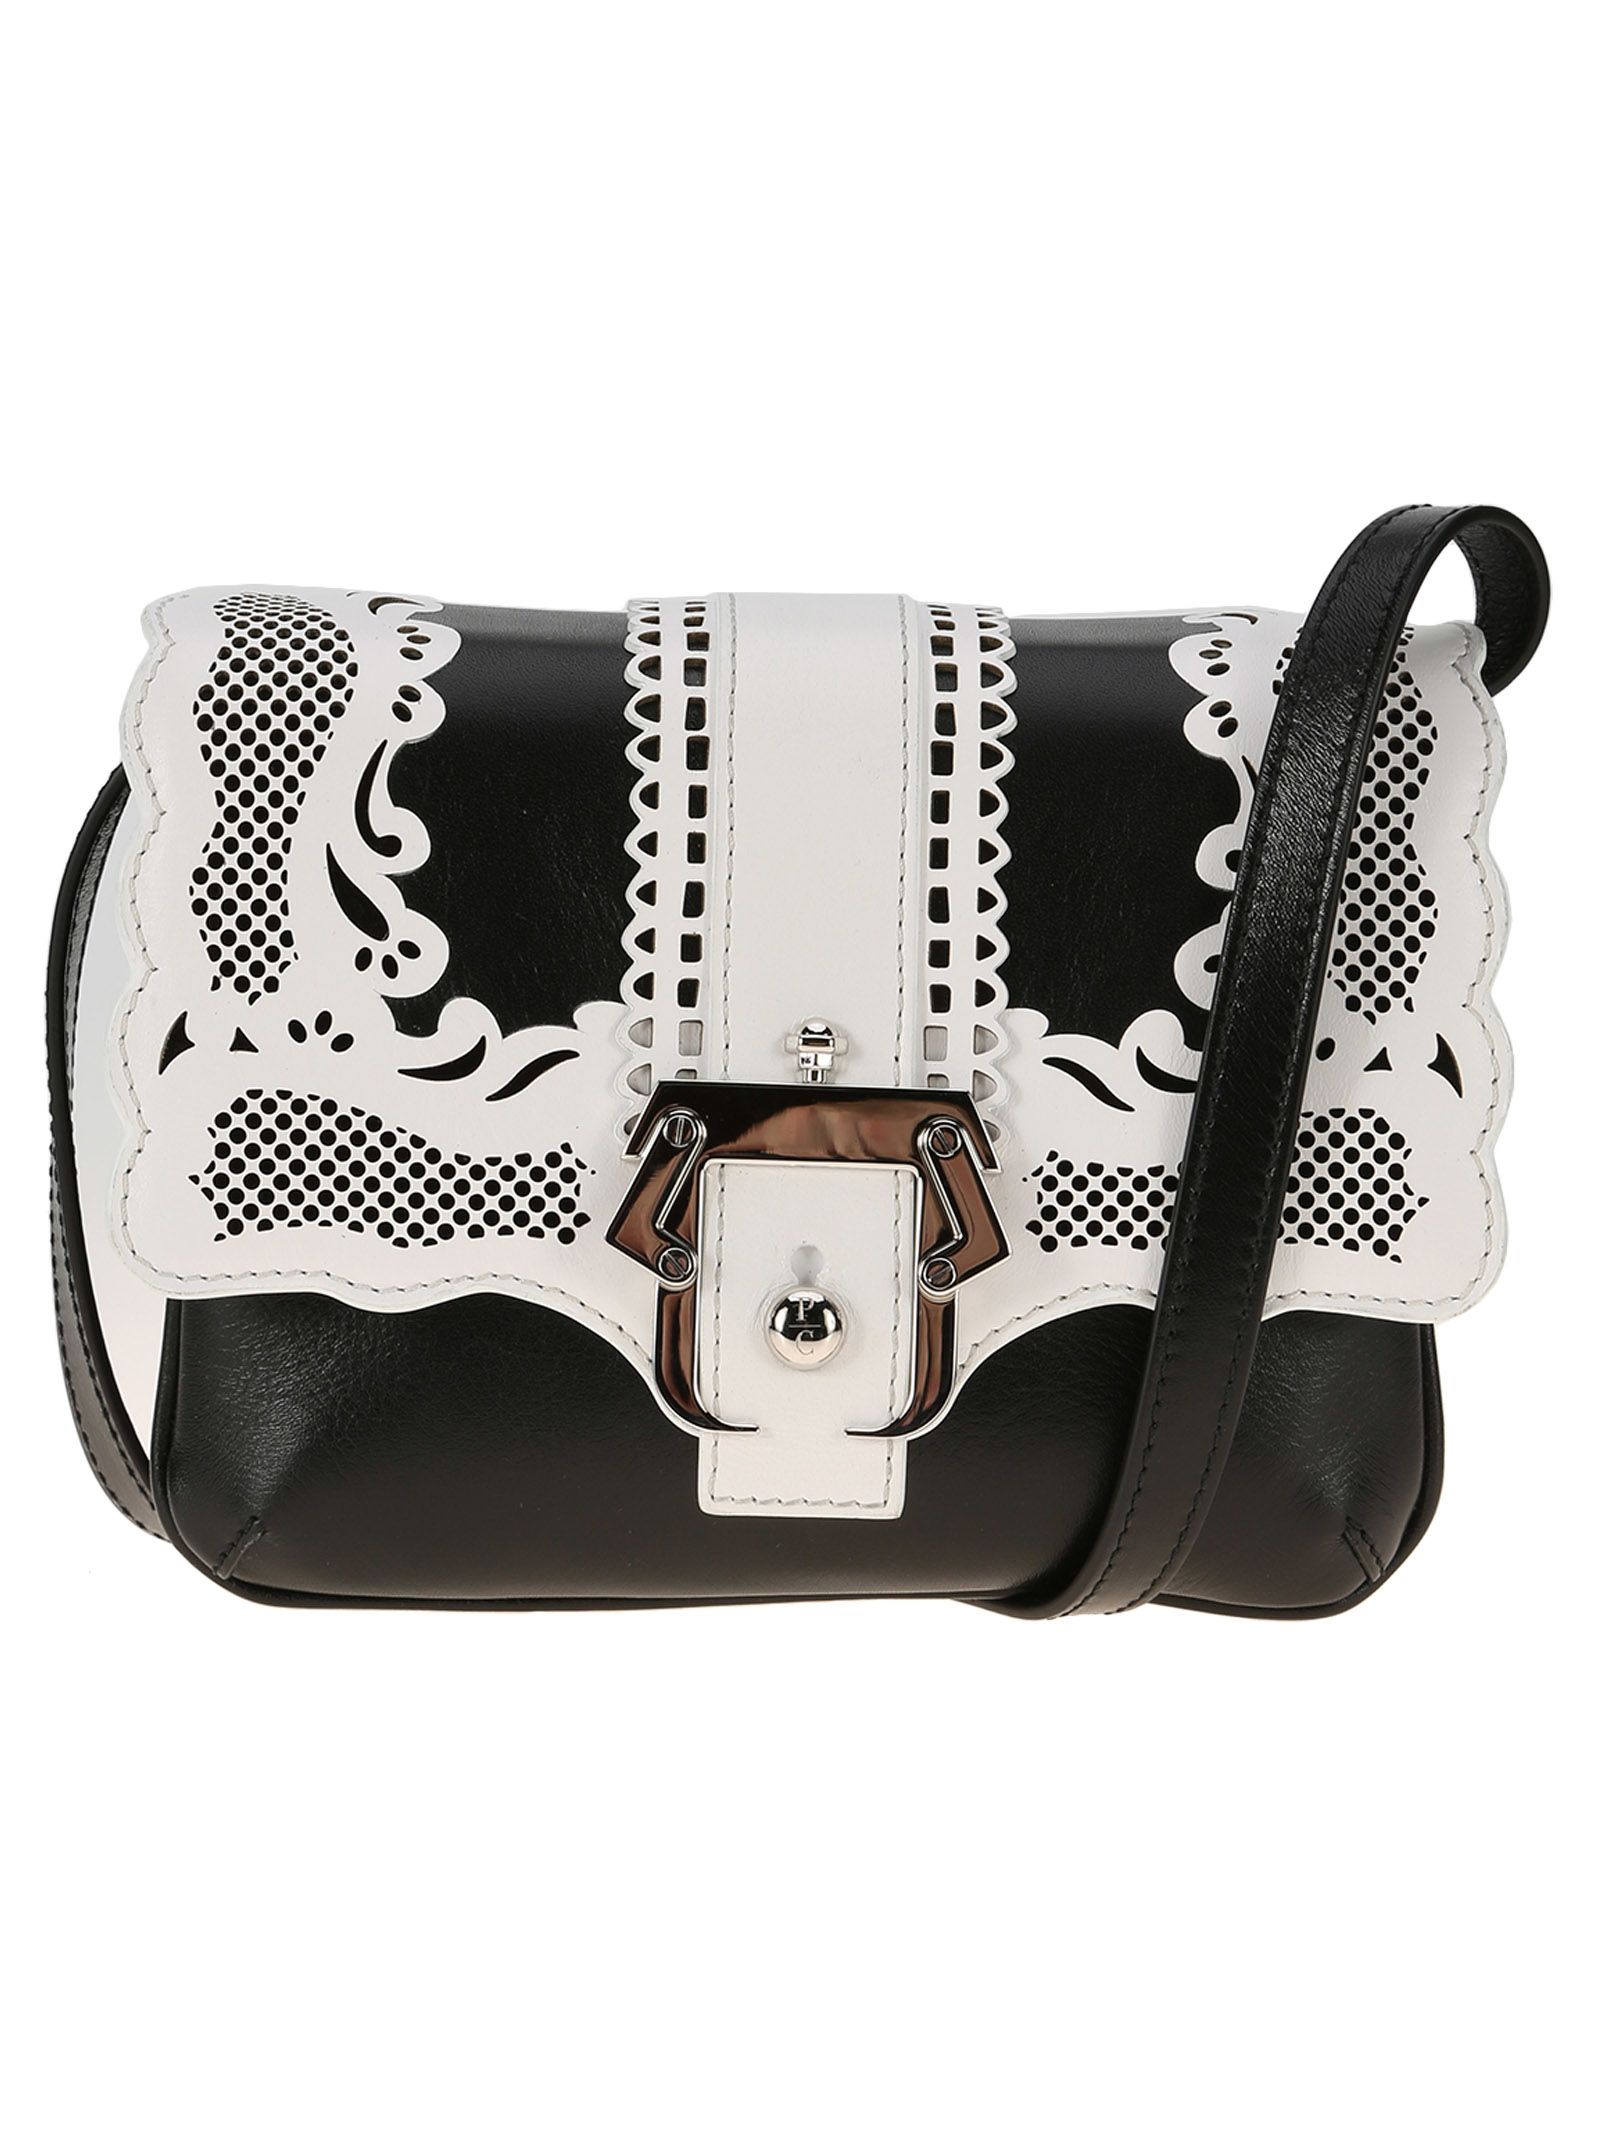 Alice Lady Lace handbag - Black Paula Cademartori ujeIow